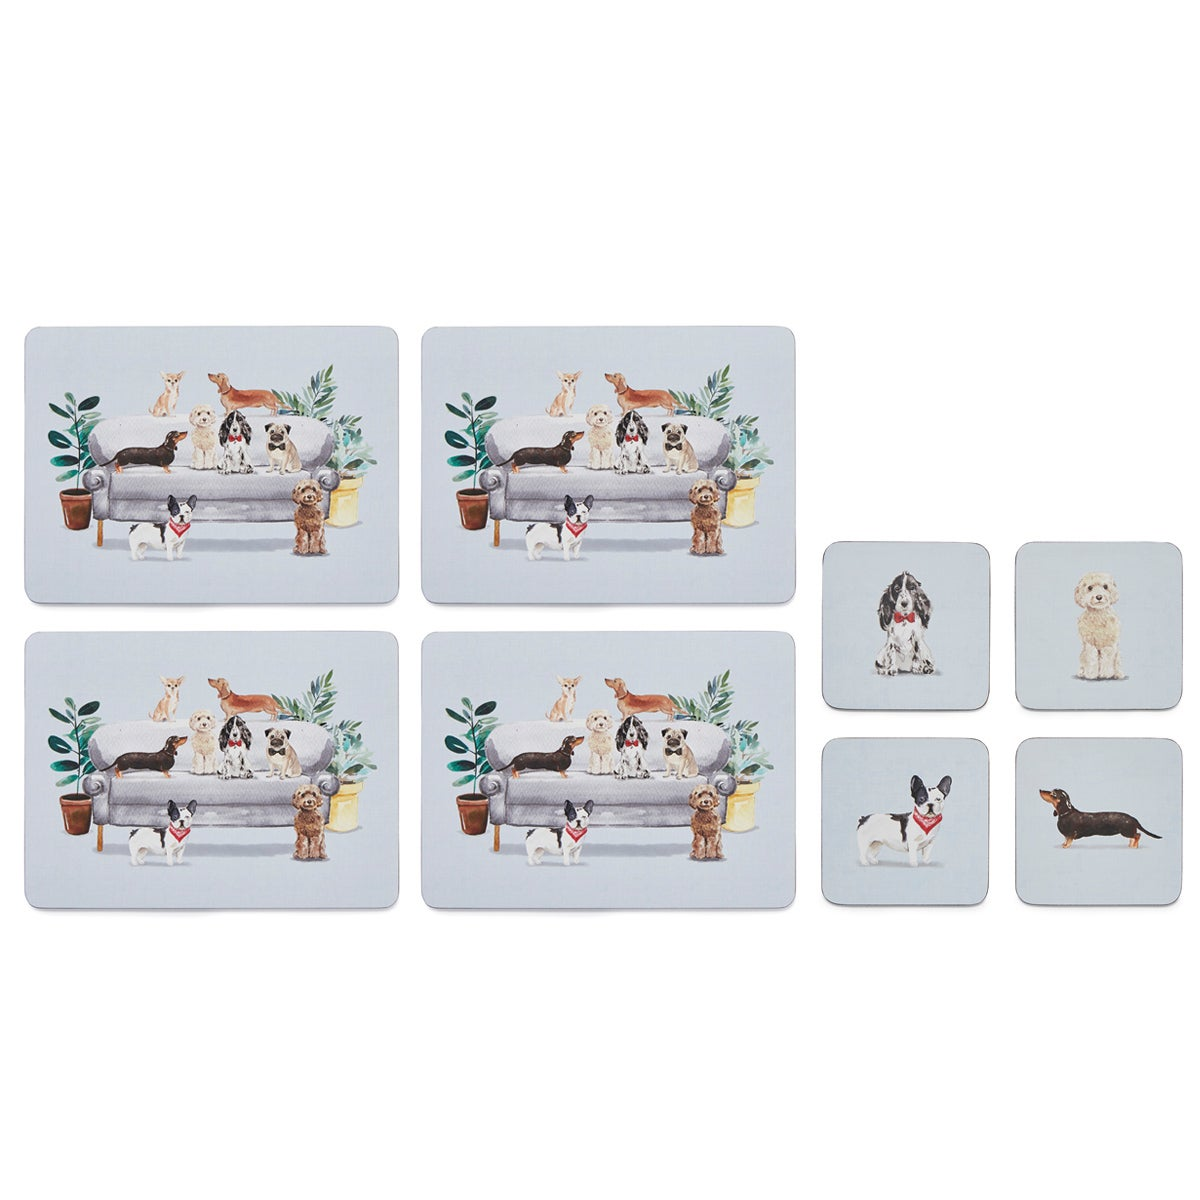 Cooksmart Curious Dogs Set of 4 Placemats and Coasters